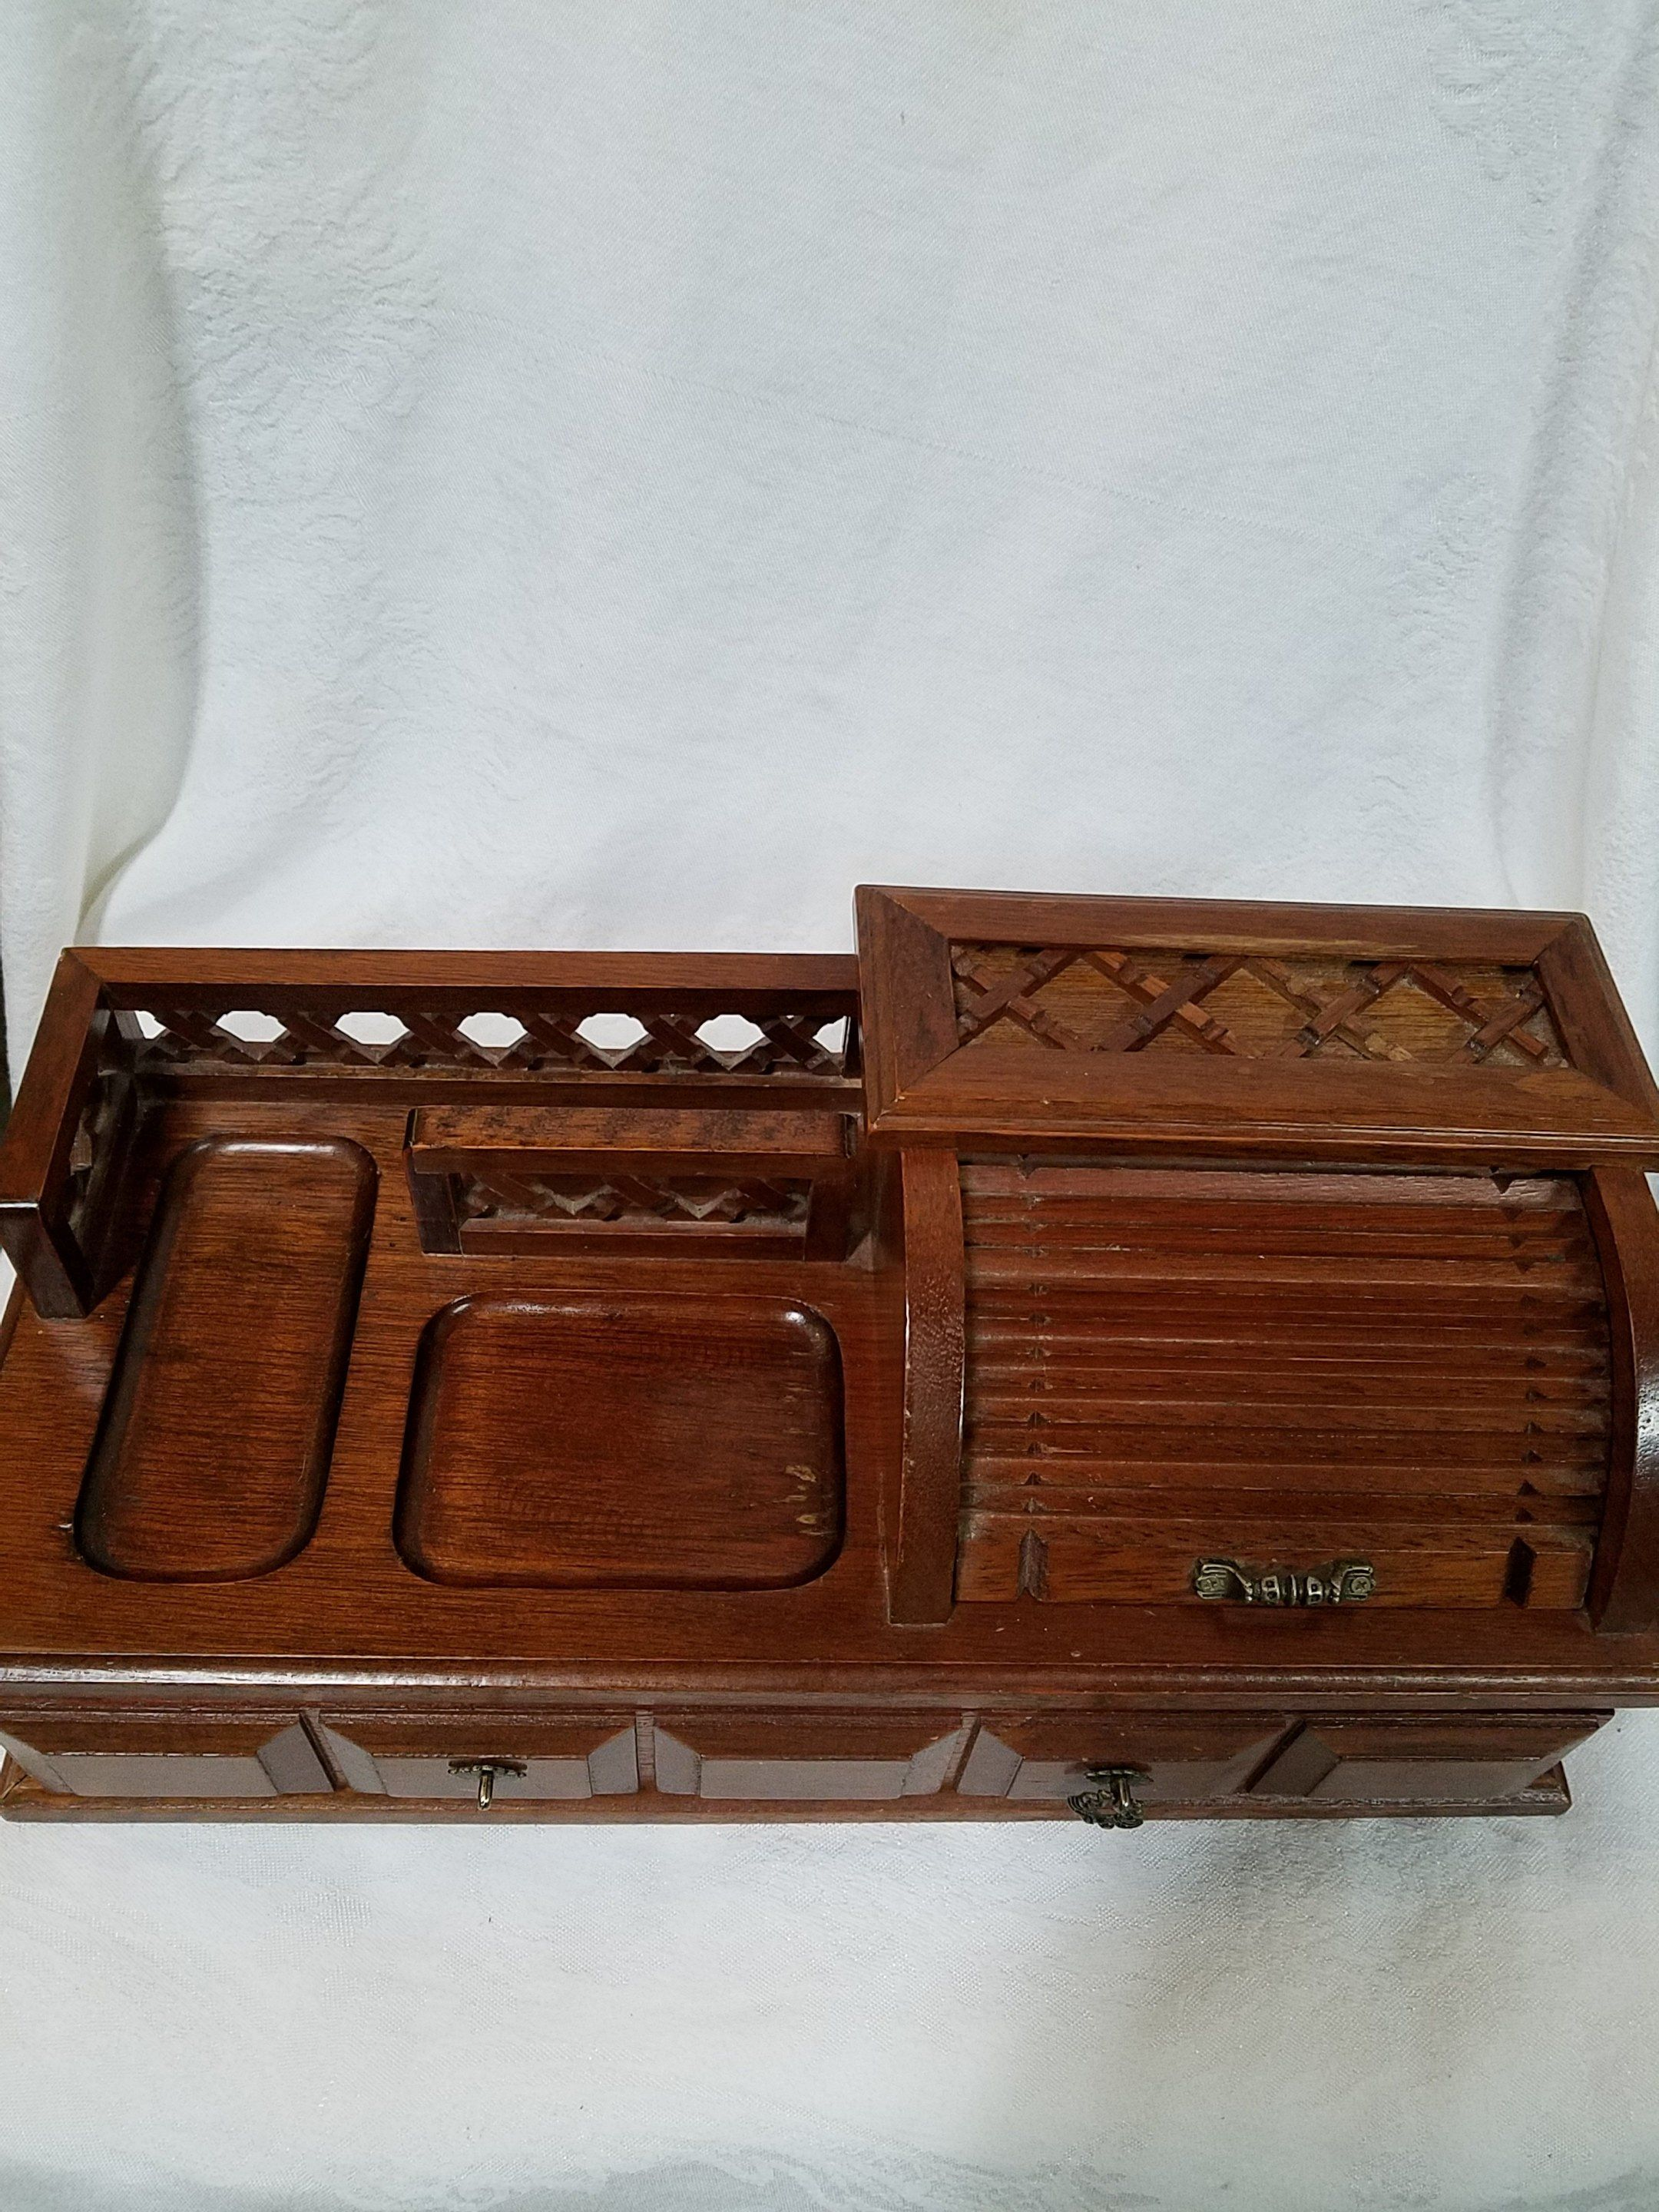 Vintage Wooden Roll Top Dresser Wooden Jewelry Box Roll Top Jewelry Box Coin And Key Storage Men S Je Jewerly Storage Wooden Jewelry Boxes Mens Jewelry Box